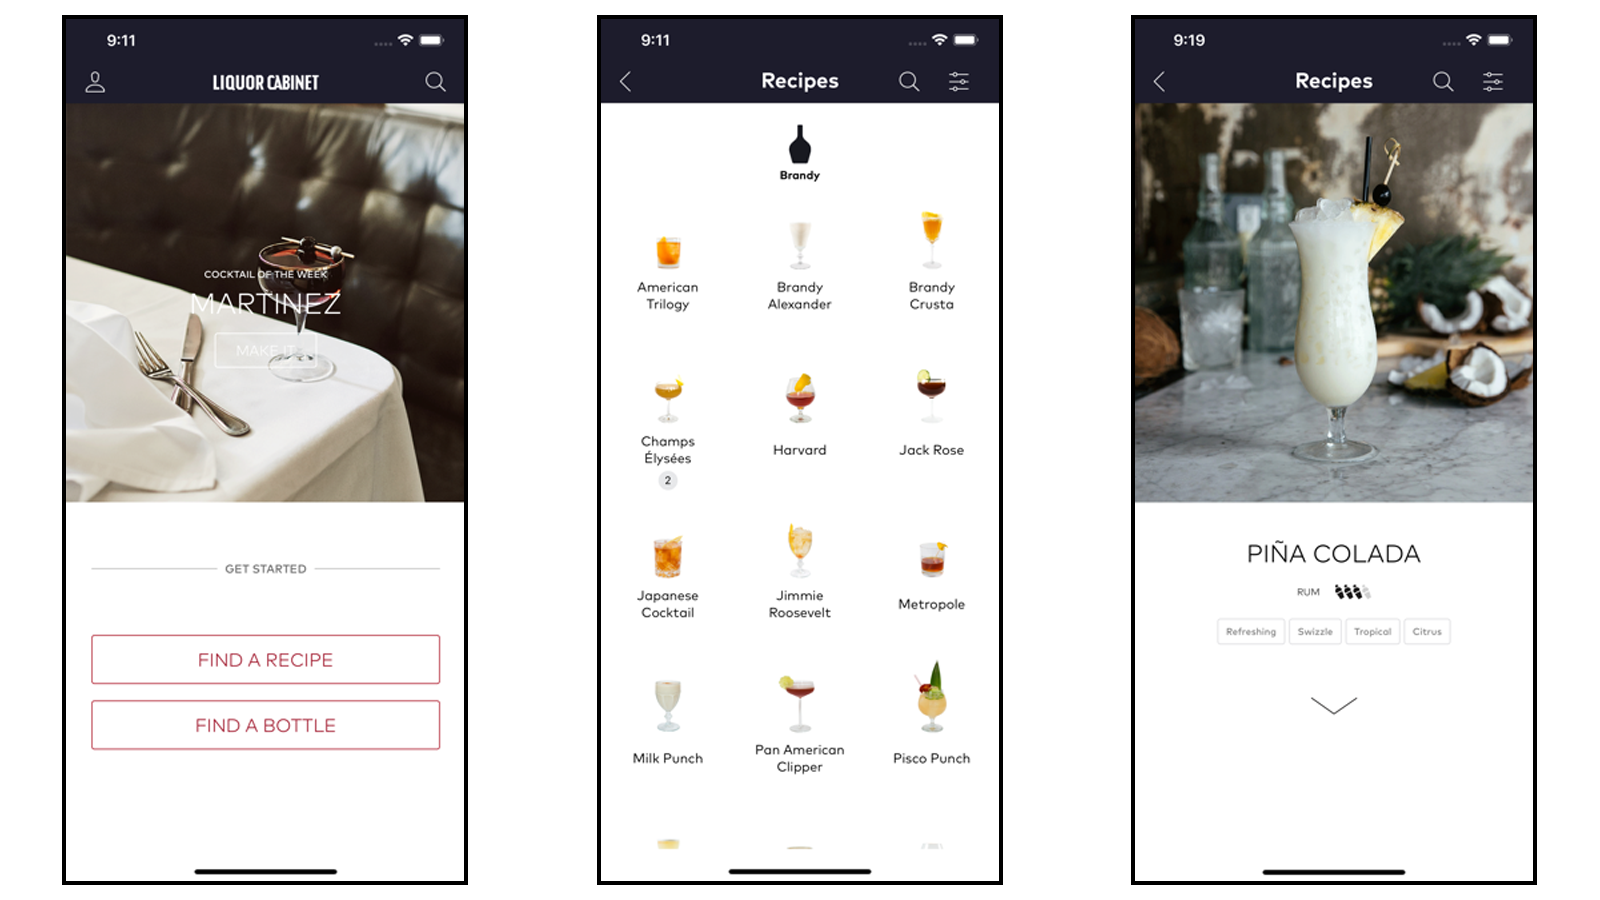 The Liquor Cabinet app featuring recipe options and drink pictures